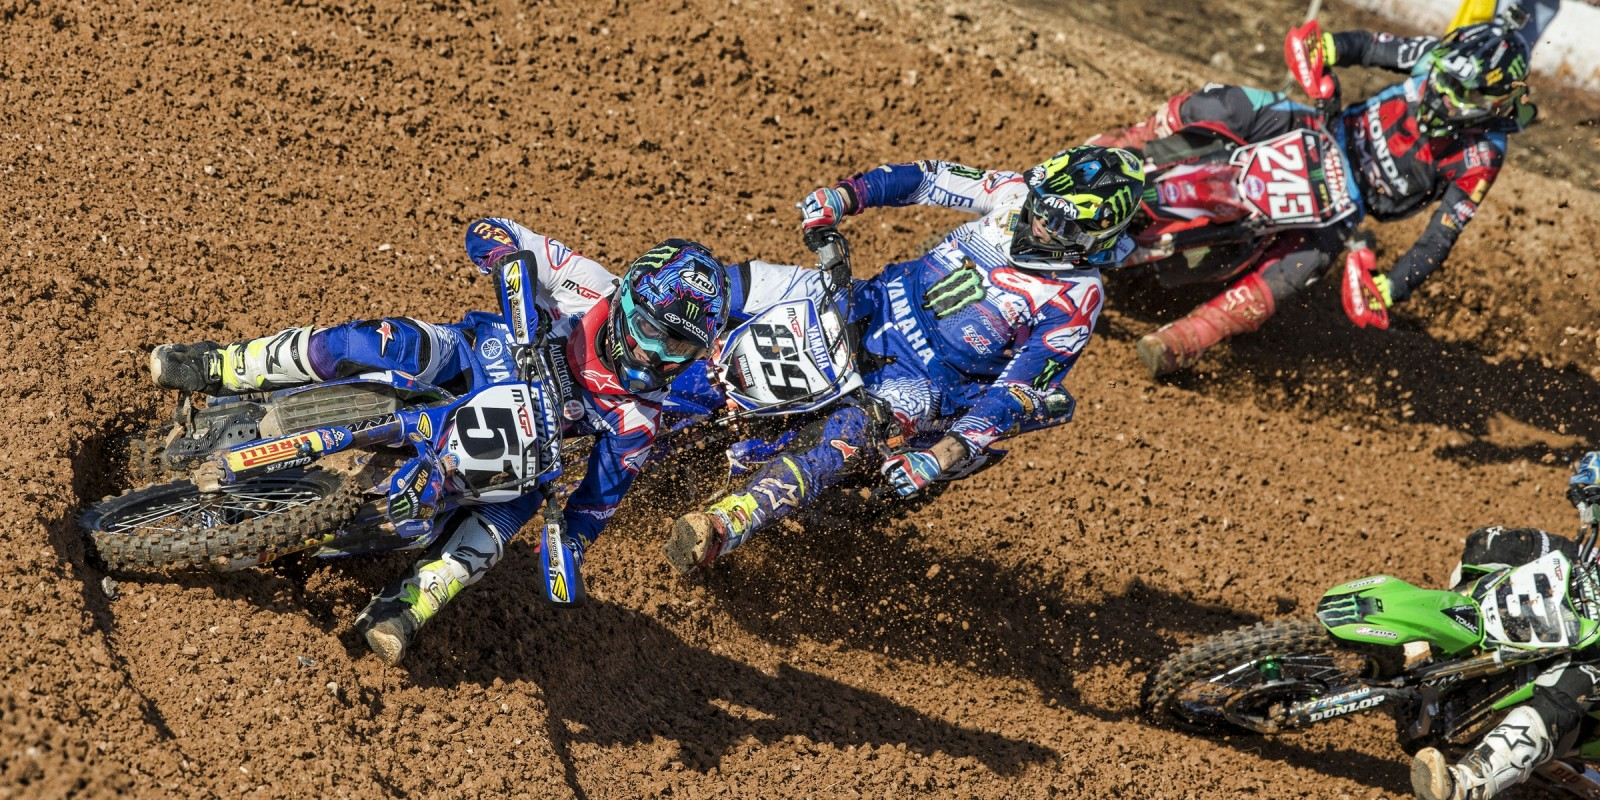 Justin Barcia at the 2016 Monster Energy MXGP of Americas